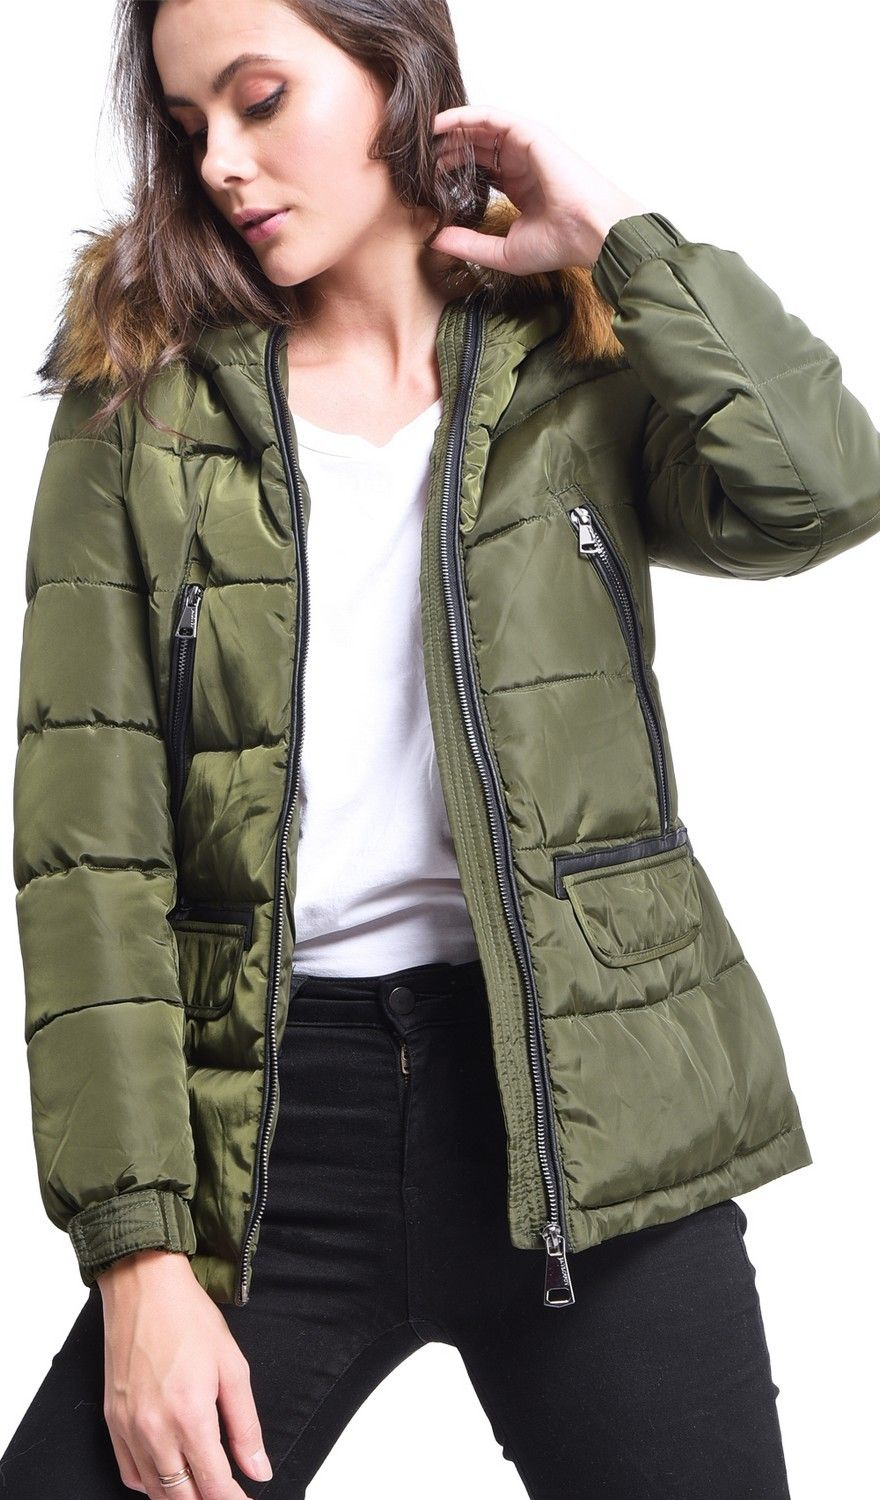 Assuili Down Jacket with Faux Fur Panel and Zipped Pockets in Khaki